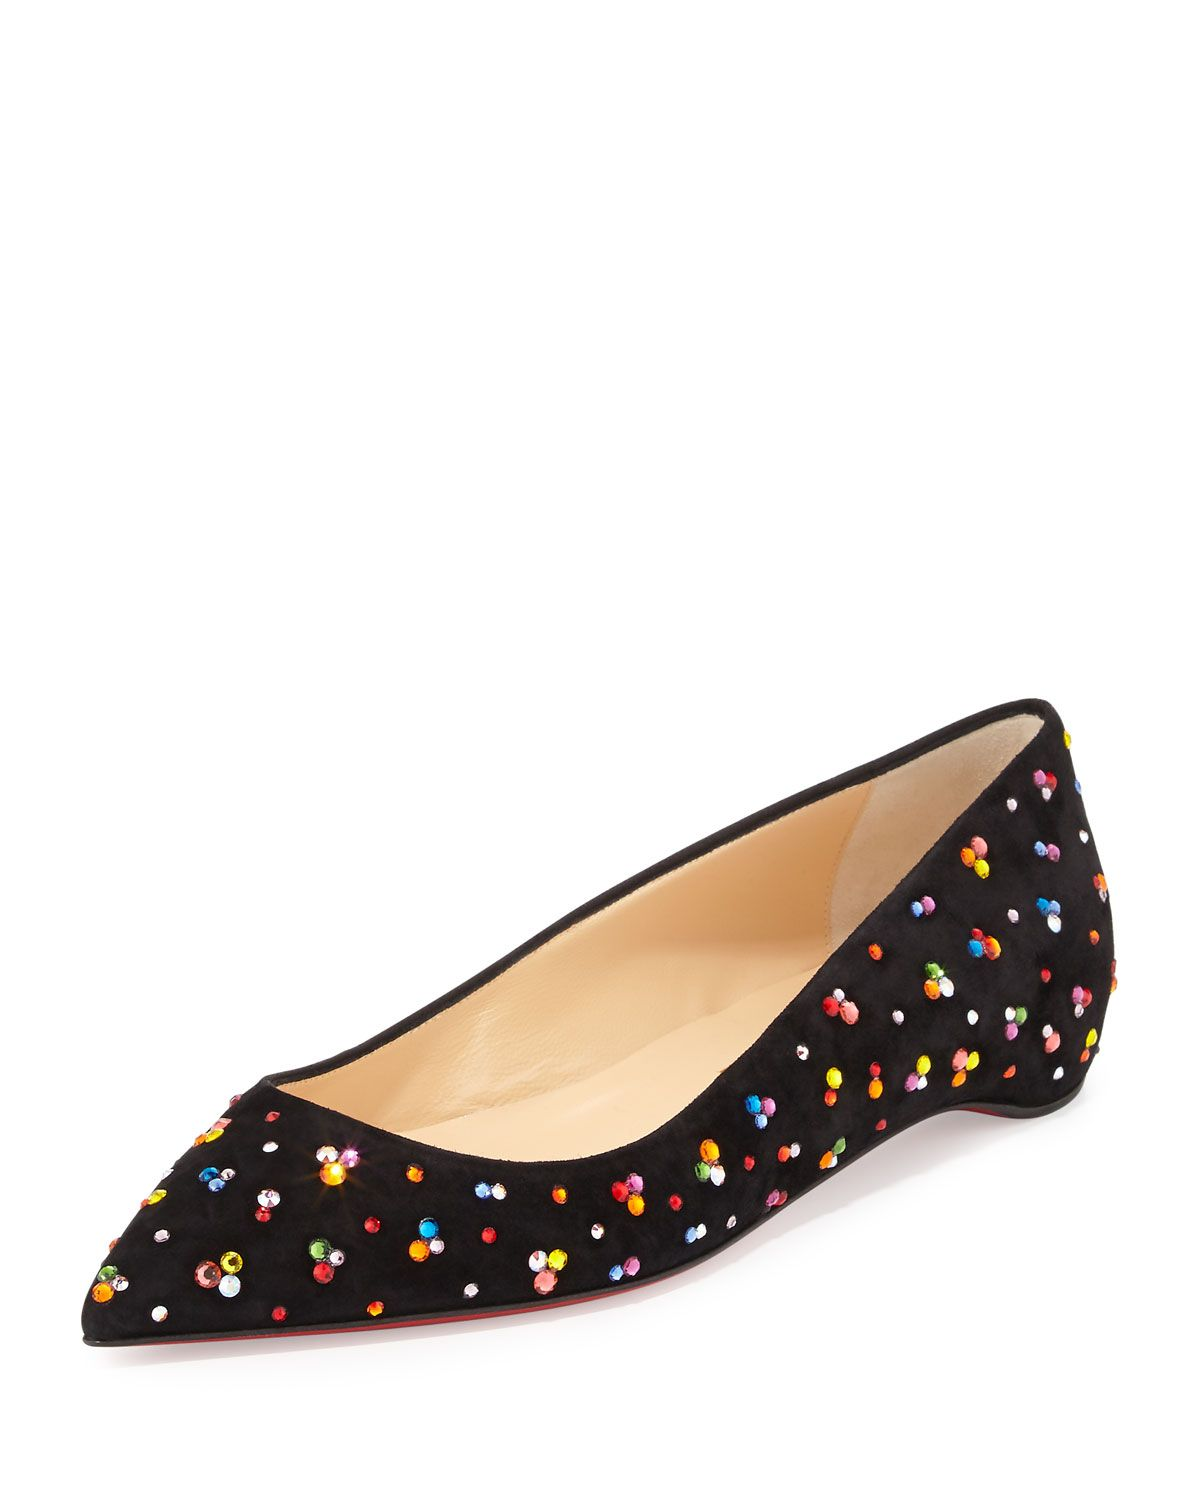 2fdbbbeab12 Pigalle Follies Crystal Red Sole Flat Black/Multi in 2019 | *Apparel ...